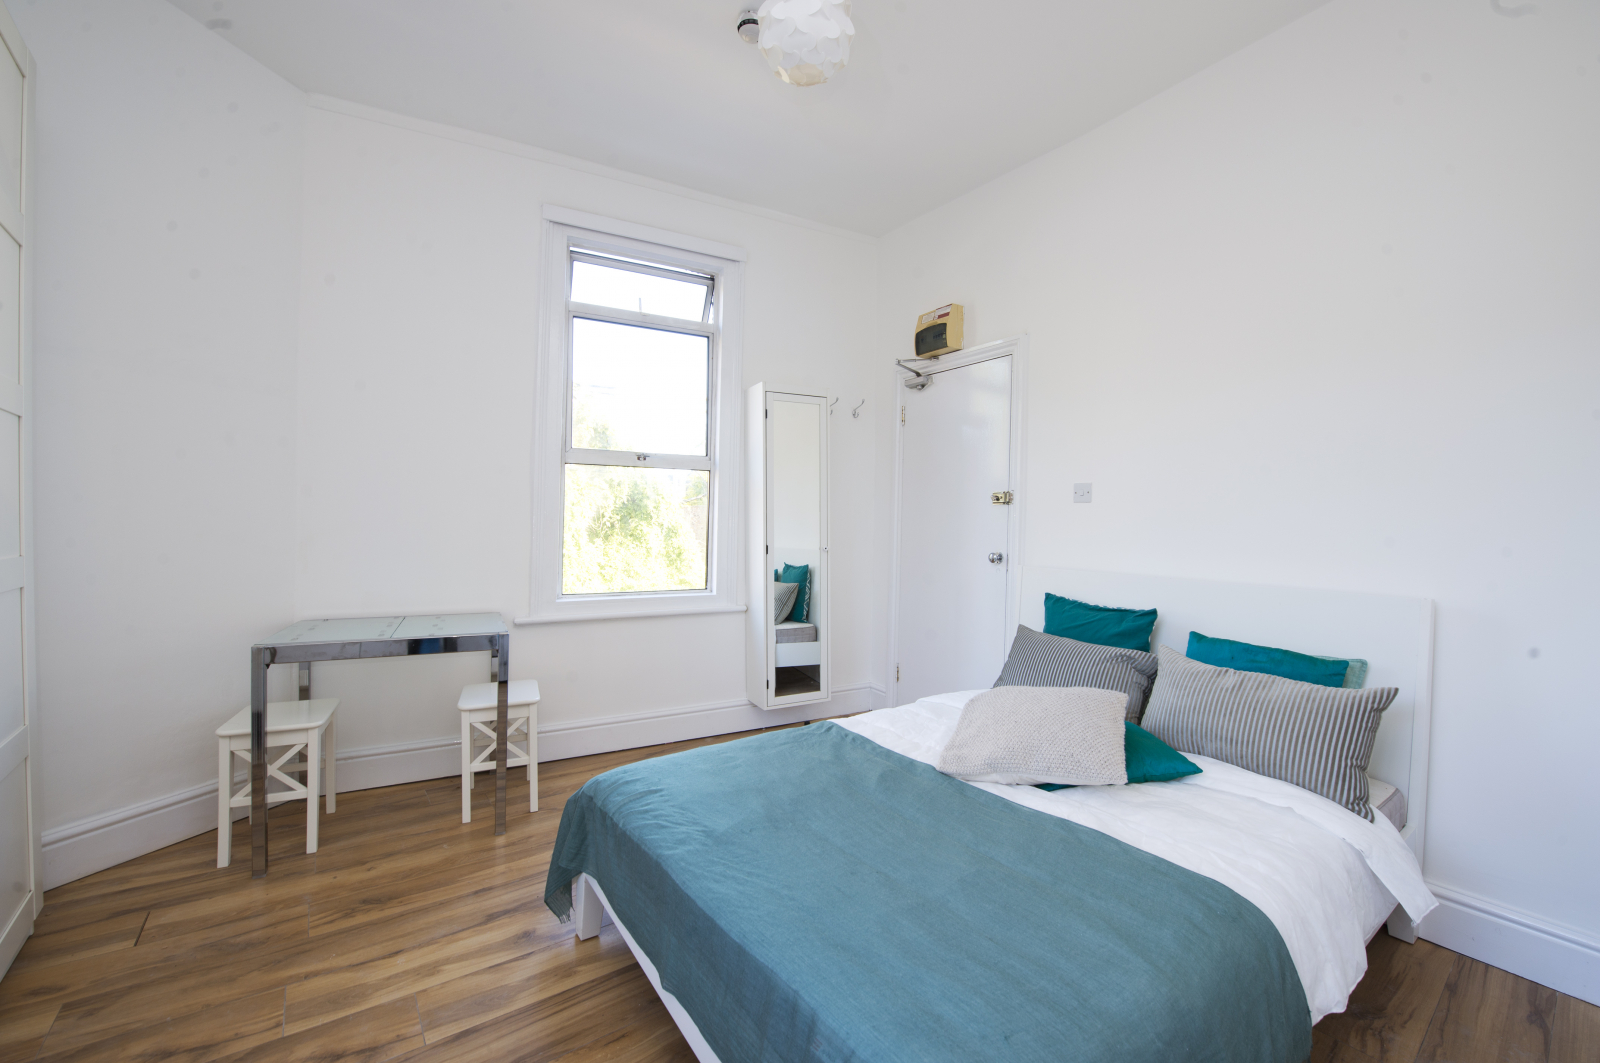 Studio flat to rent in Dalling road, Hammersmith, London  - Property Image 1